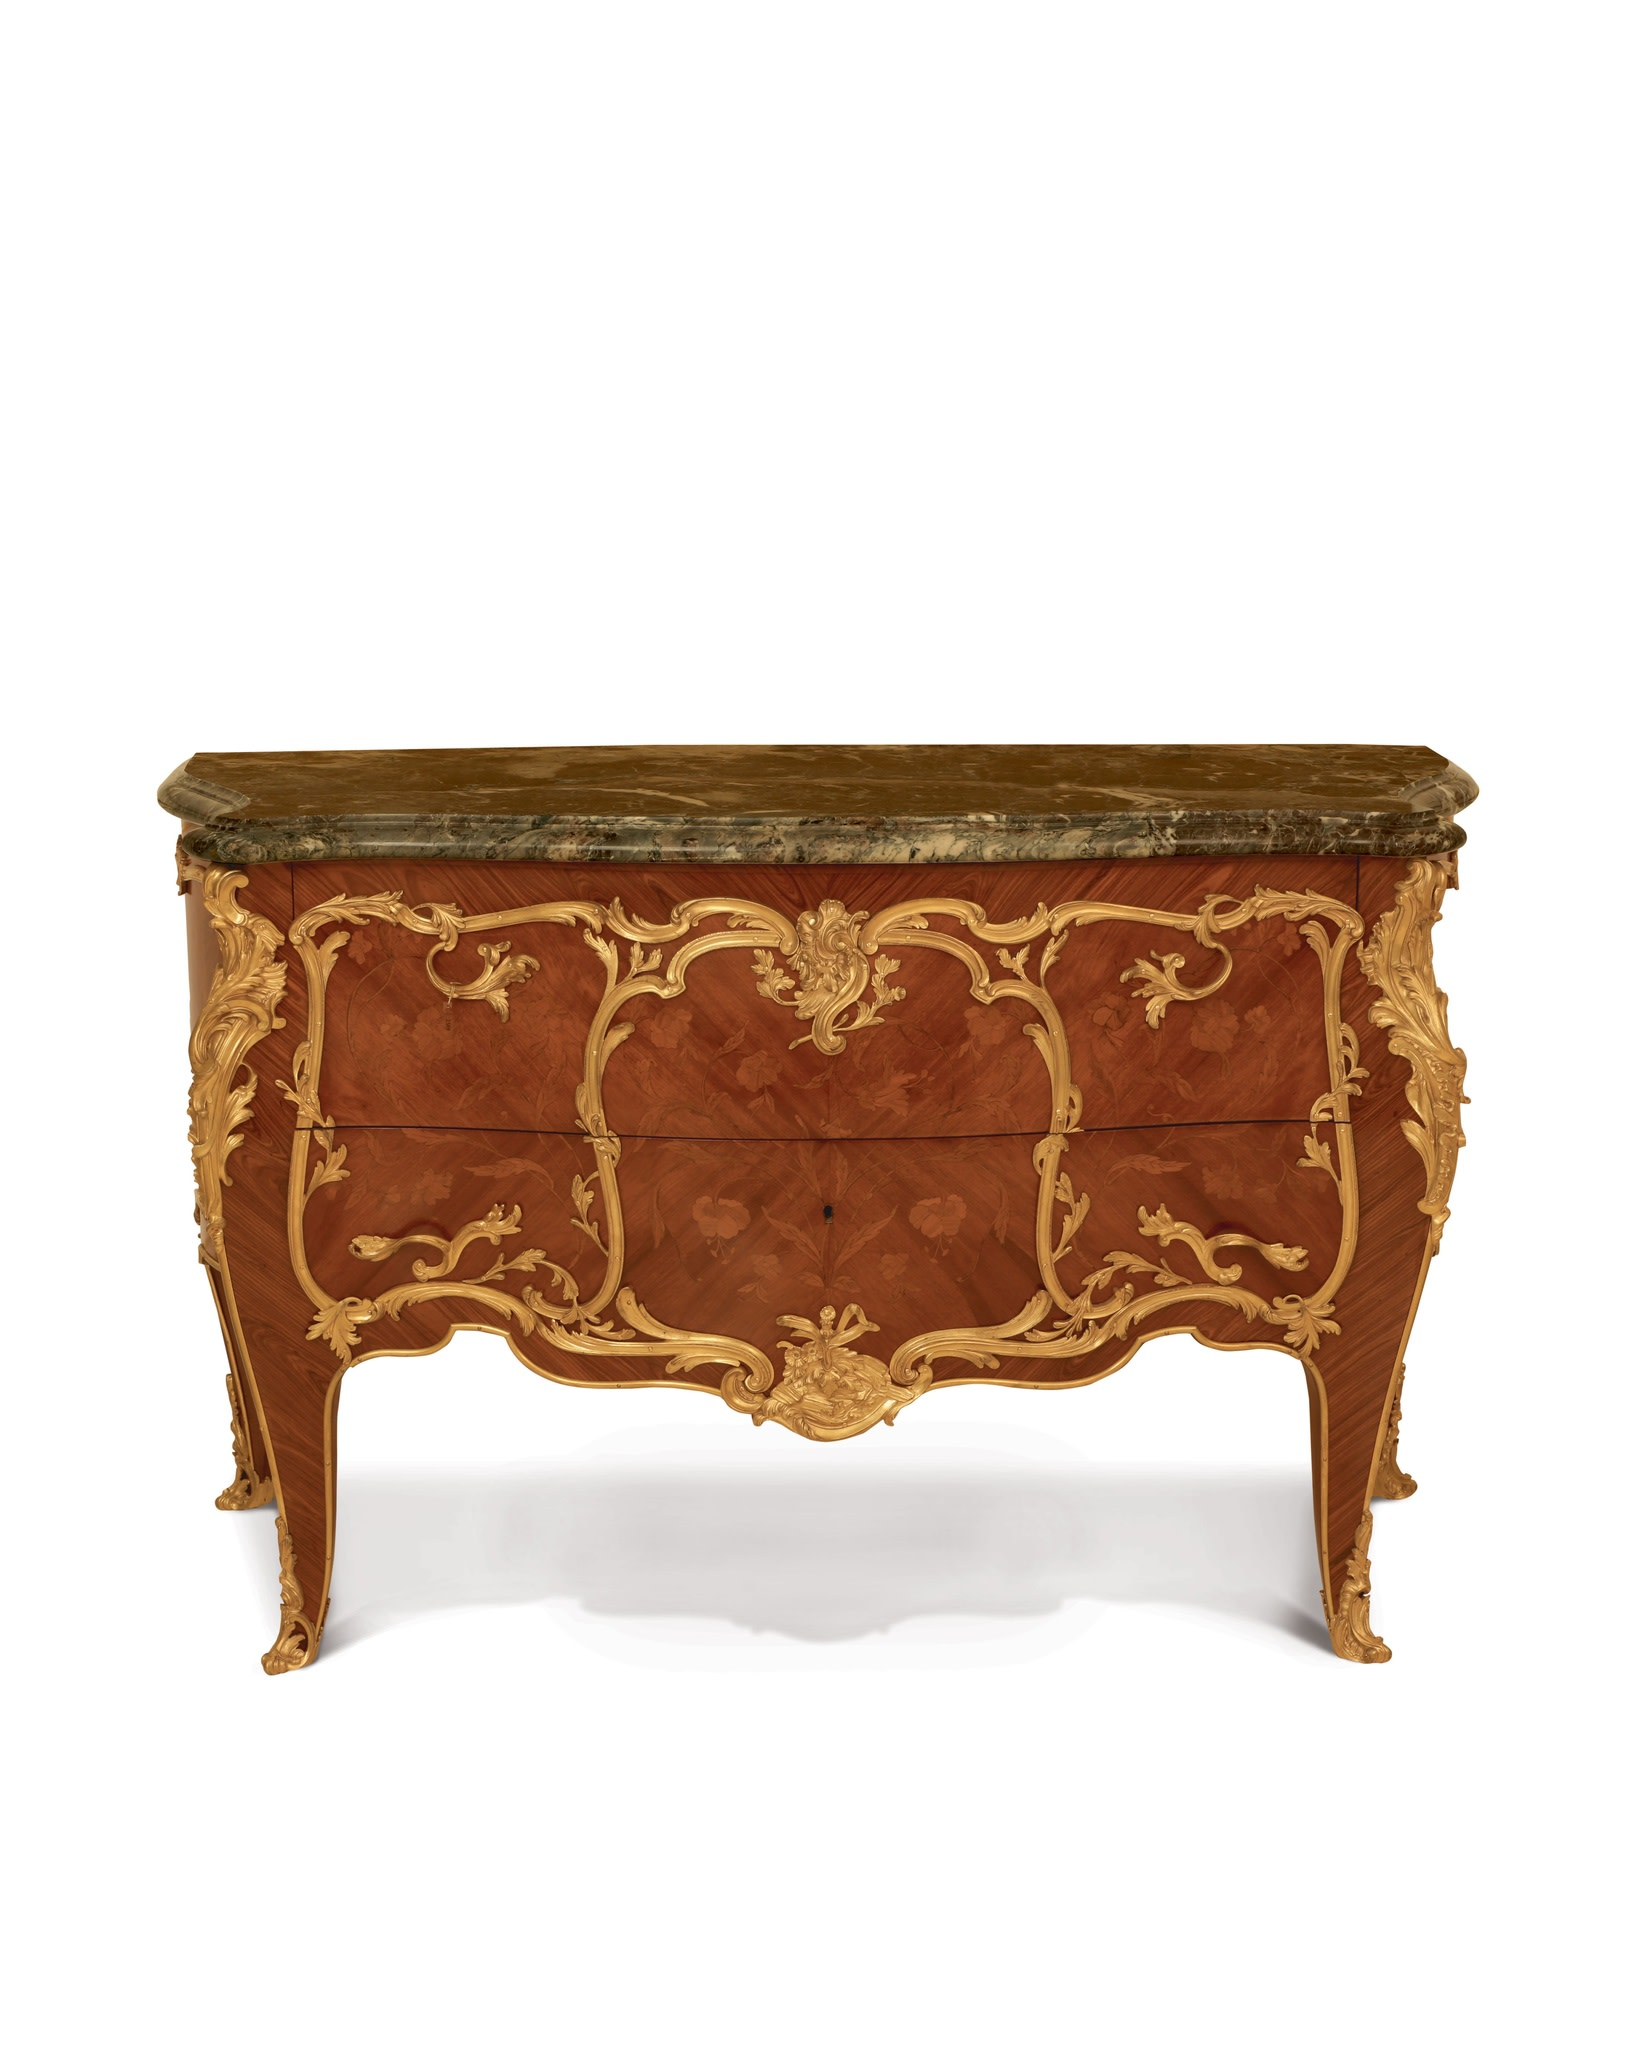 fran ois linke louis xv style commode end of 19th. Black Bedroom Furniture Sets. Home Design Ideas